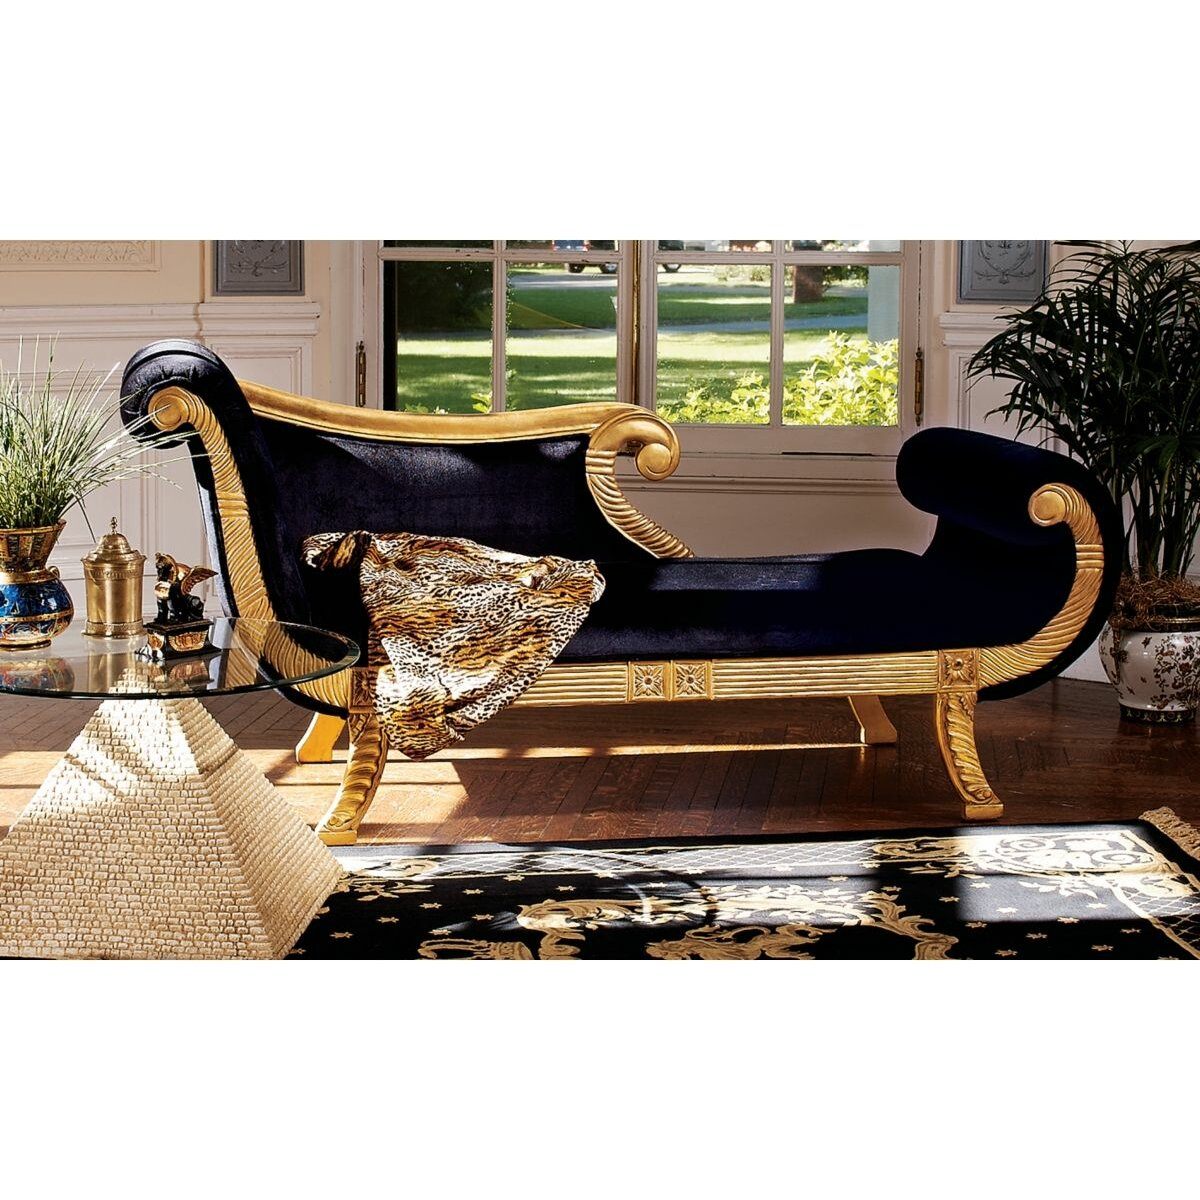 Design toscano cleopatra neoclassica fabric chaise lounge for The best furniture in the world